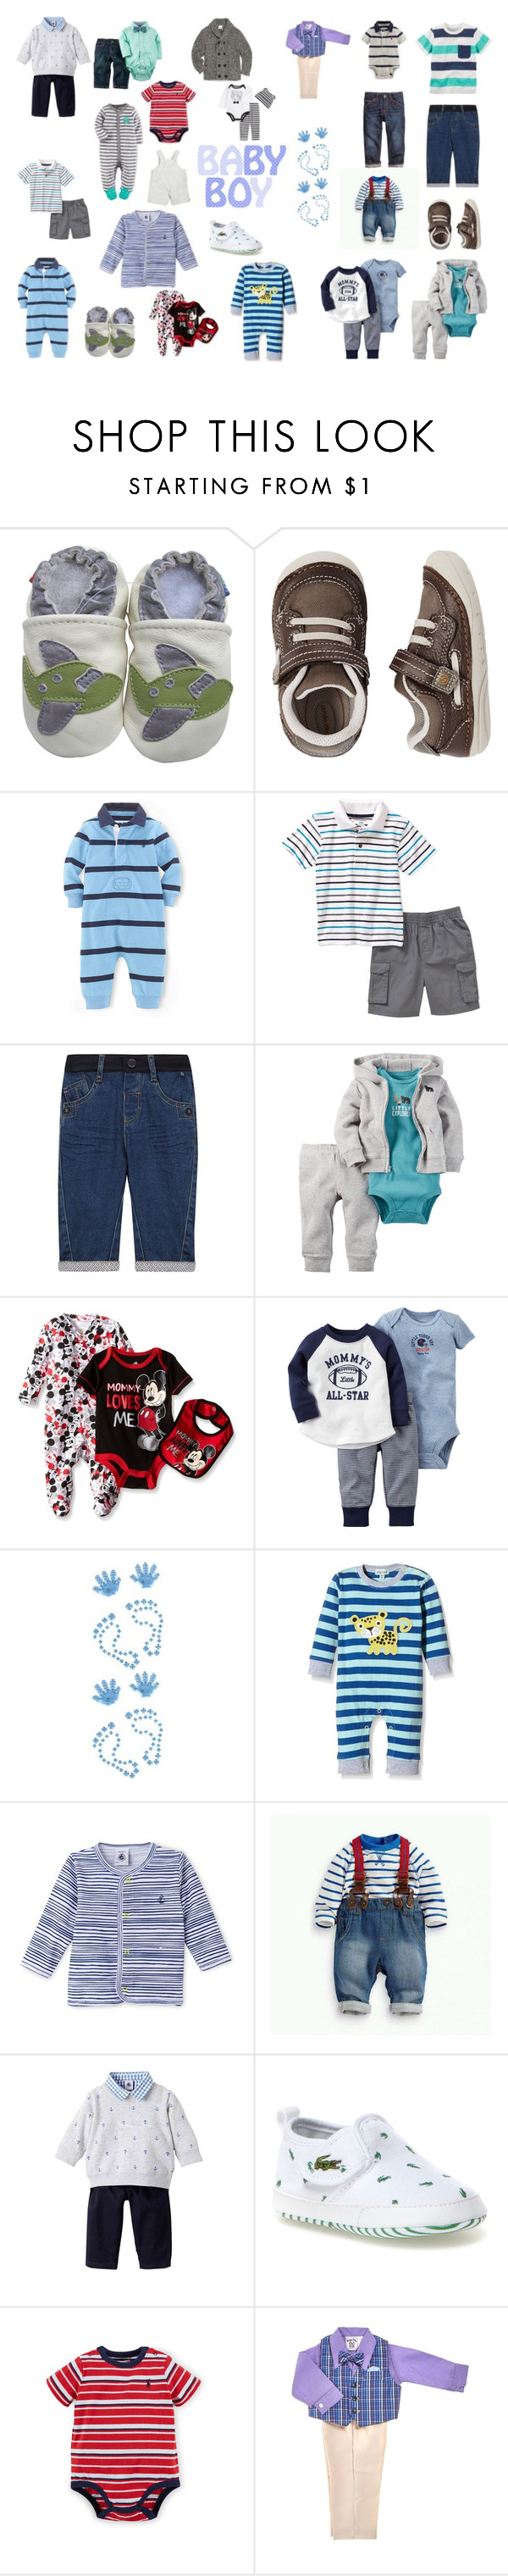 """Baby Boy"" by heather-amos918 ❤ liked on Polyvore featuring Stride Rite, Carter's, Ted Baker, Disney, Paul Frank, Lacoste, Egg Baby by Susan Lazar and Baby"